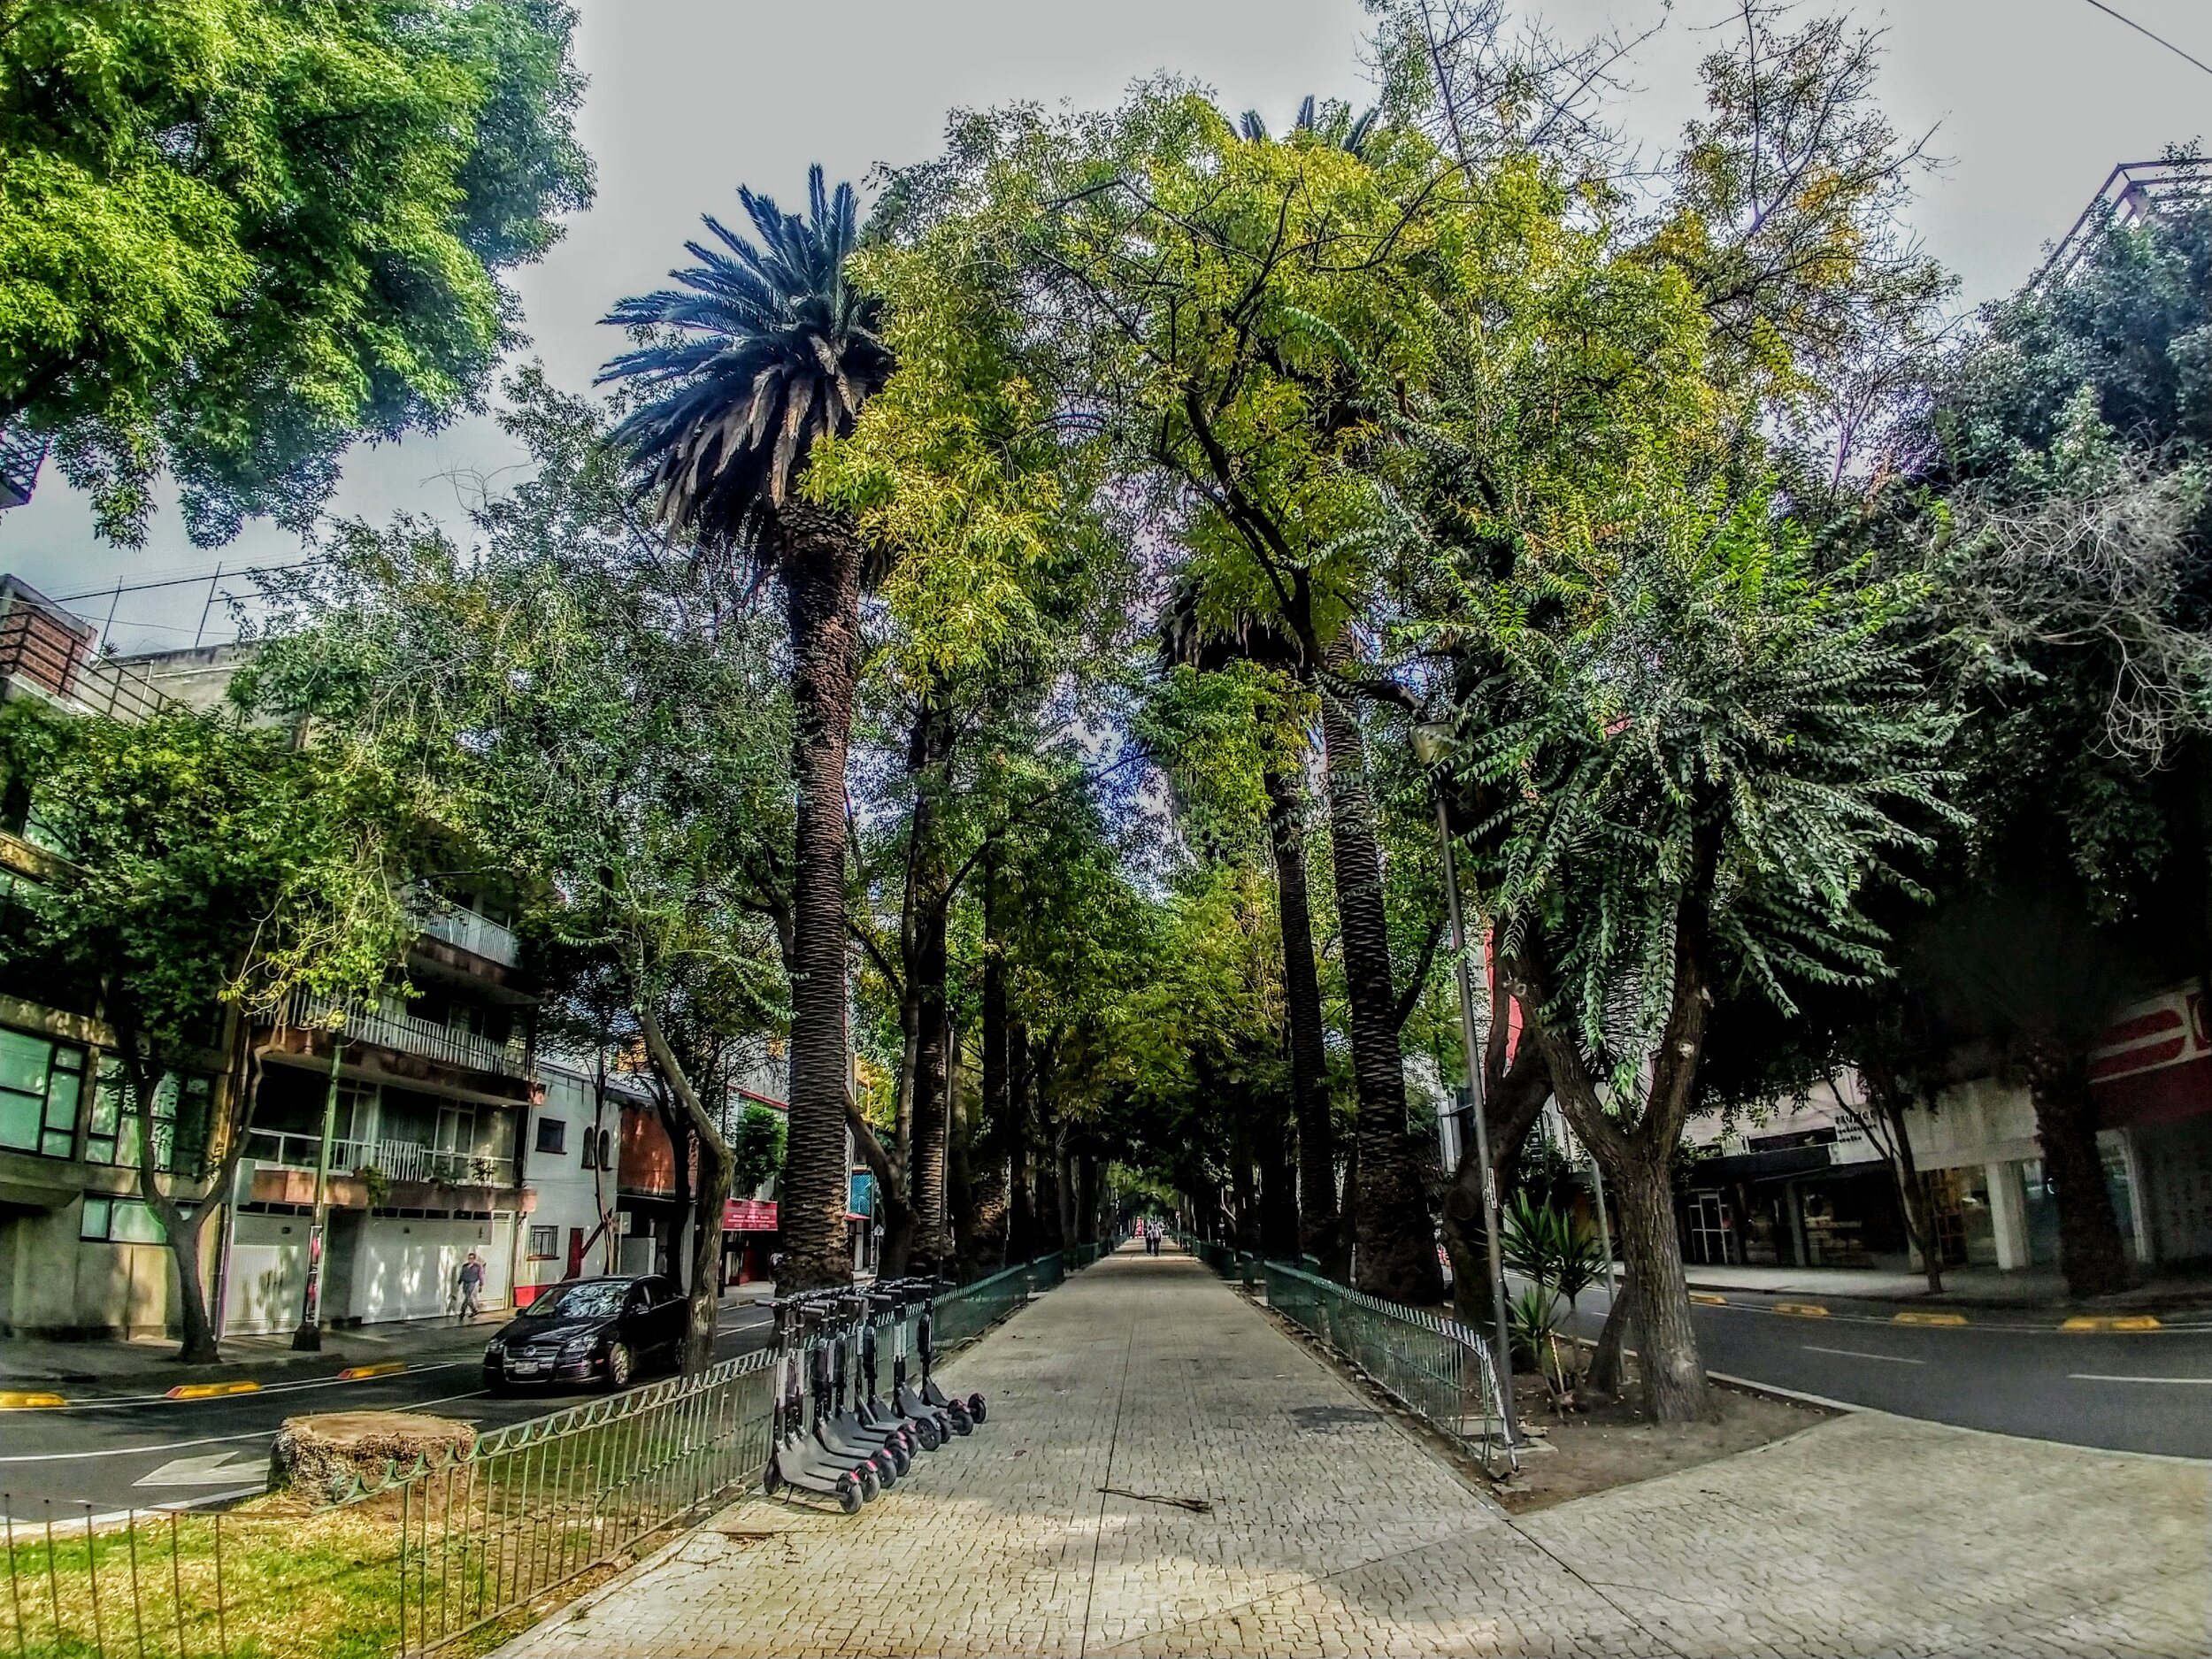 These beautiful walkways are all over the place in Mexico City.